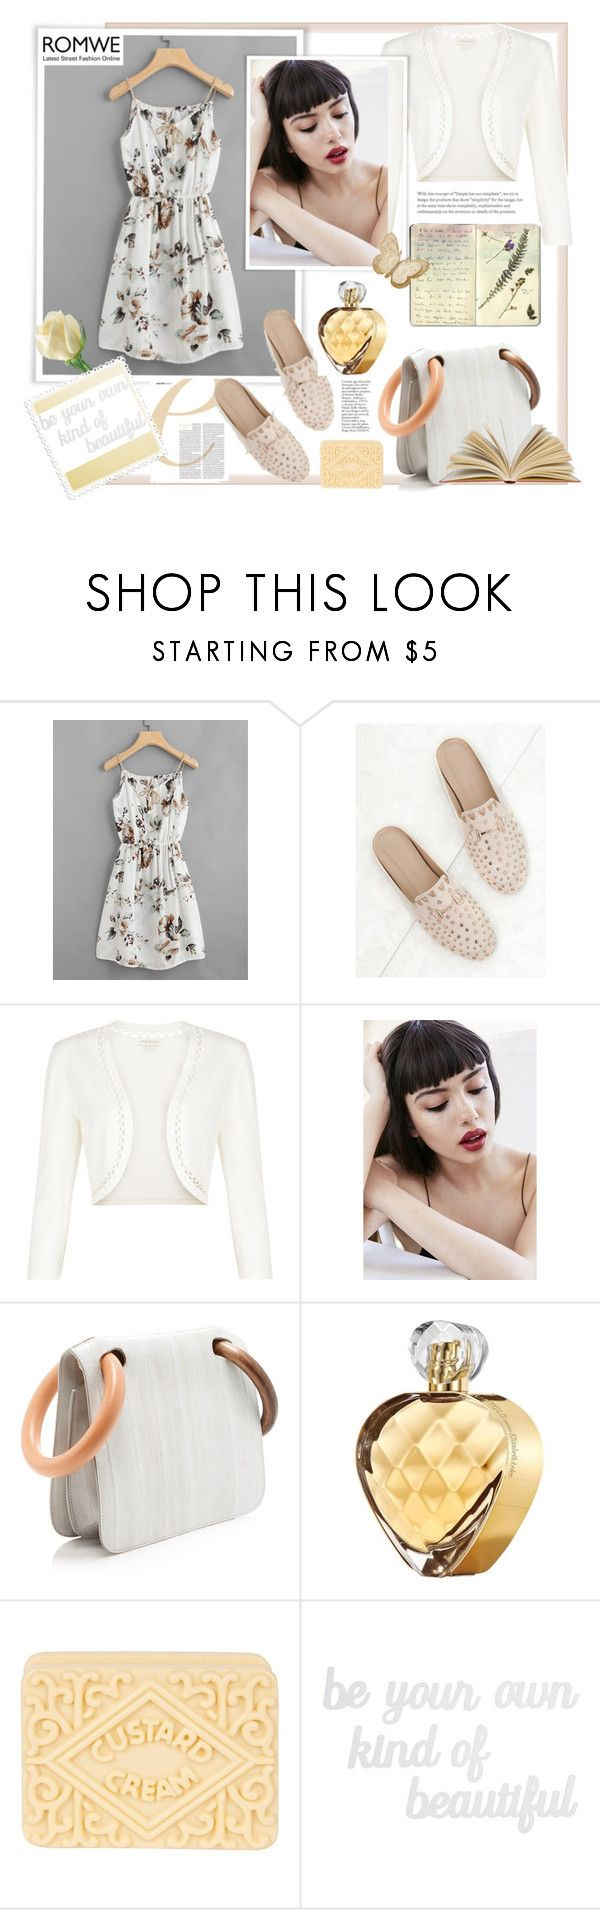 """""""Romwe."""" by natalyapril1976 ❤ liked on Polyvore featuring Monsoon, Moleskine, Obsessive Compulsive Cosmetics, Roksanda, Elizabeth Arden, Topshop and PBteen"""